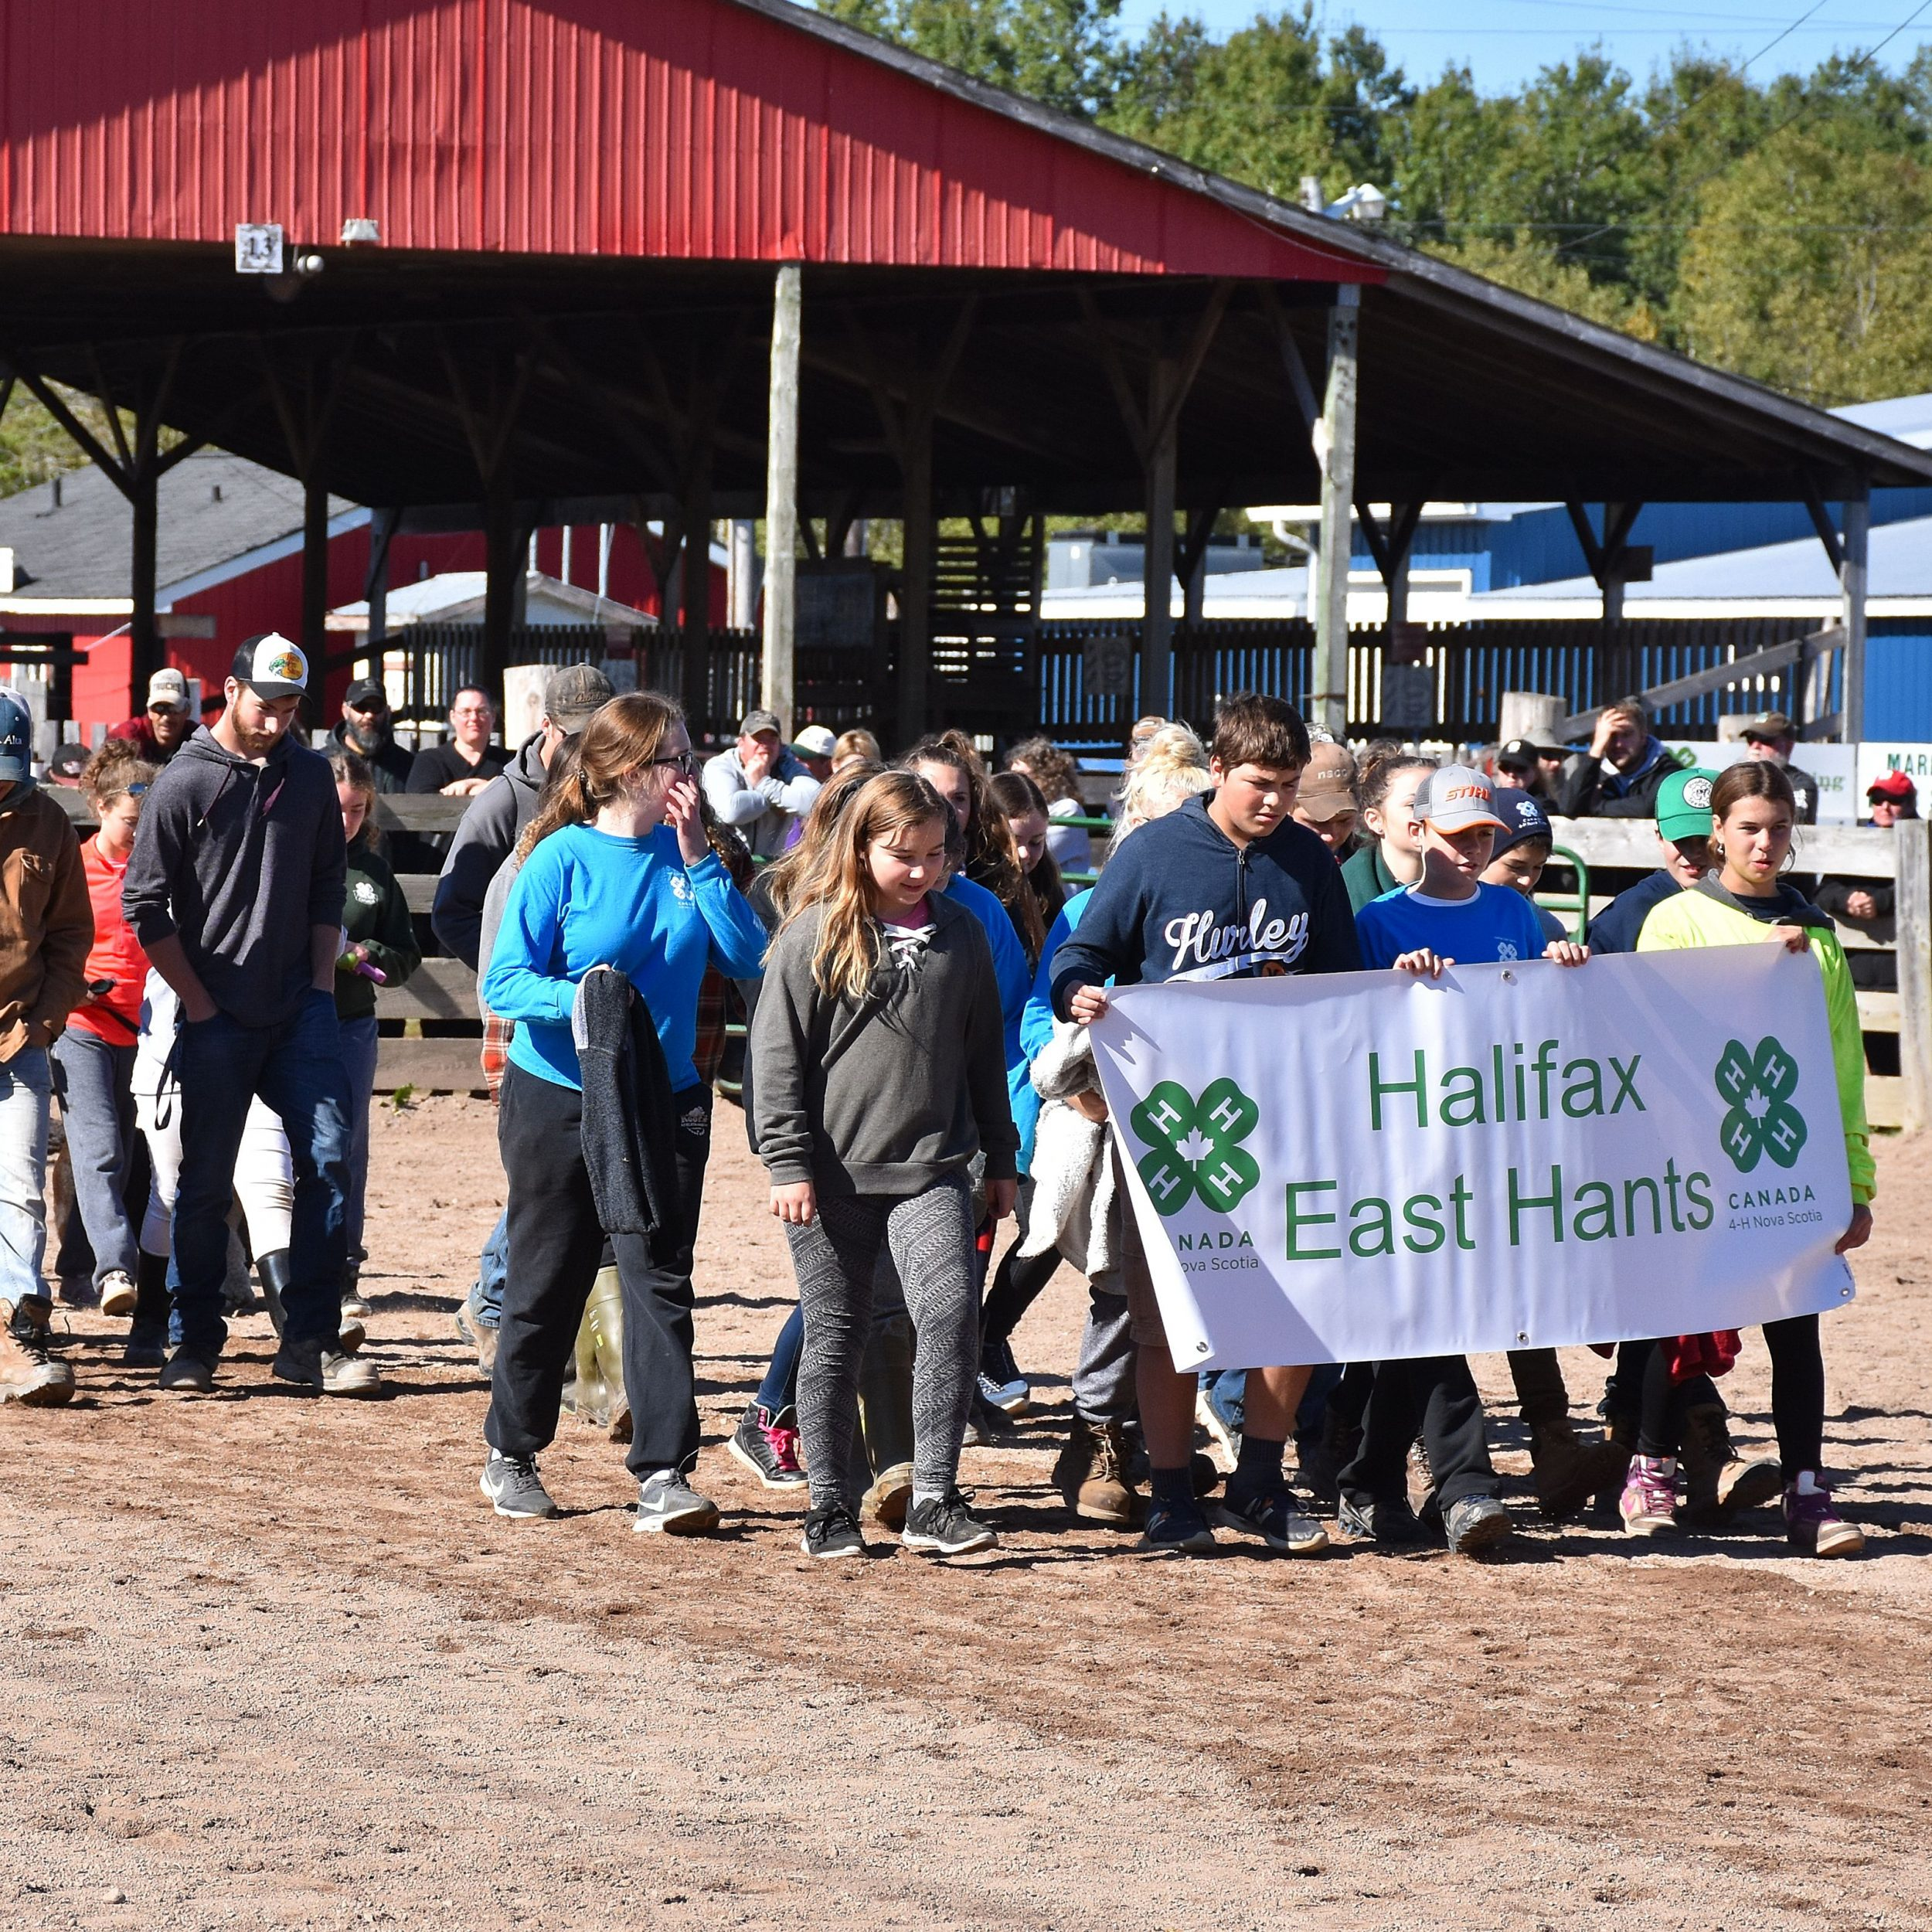 4-H Members from Halifax/East Hants